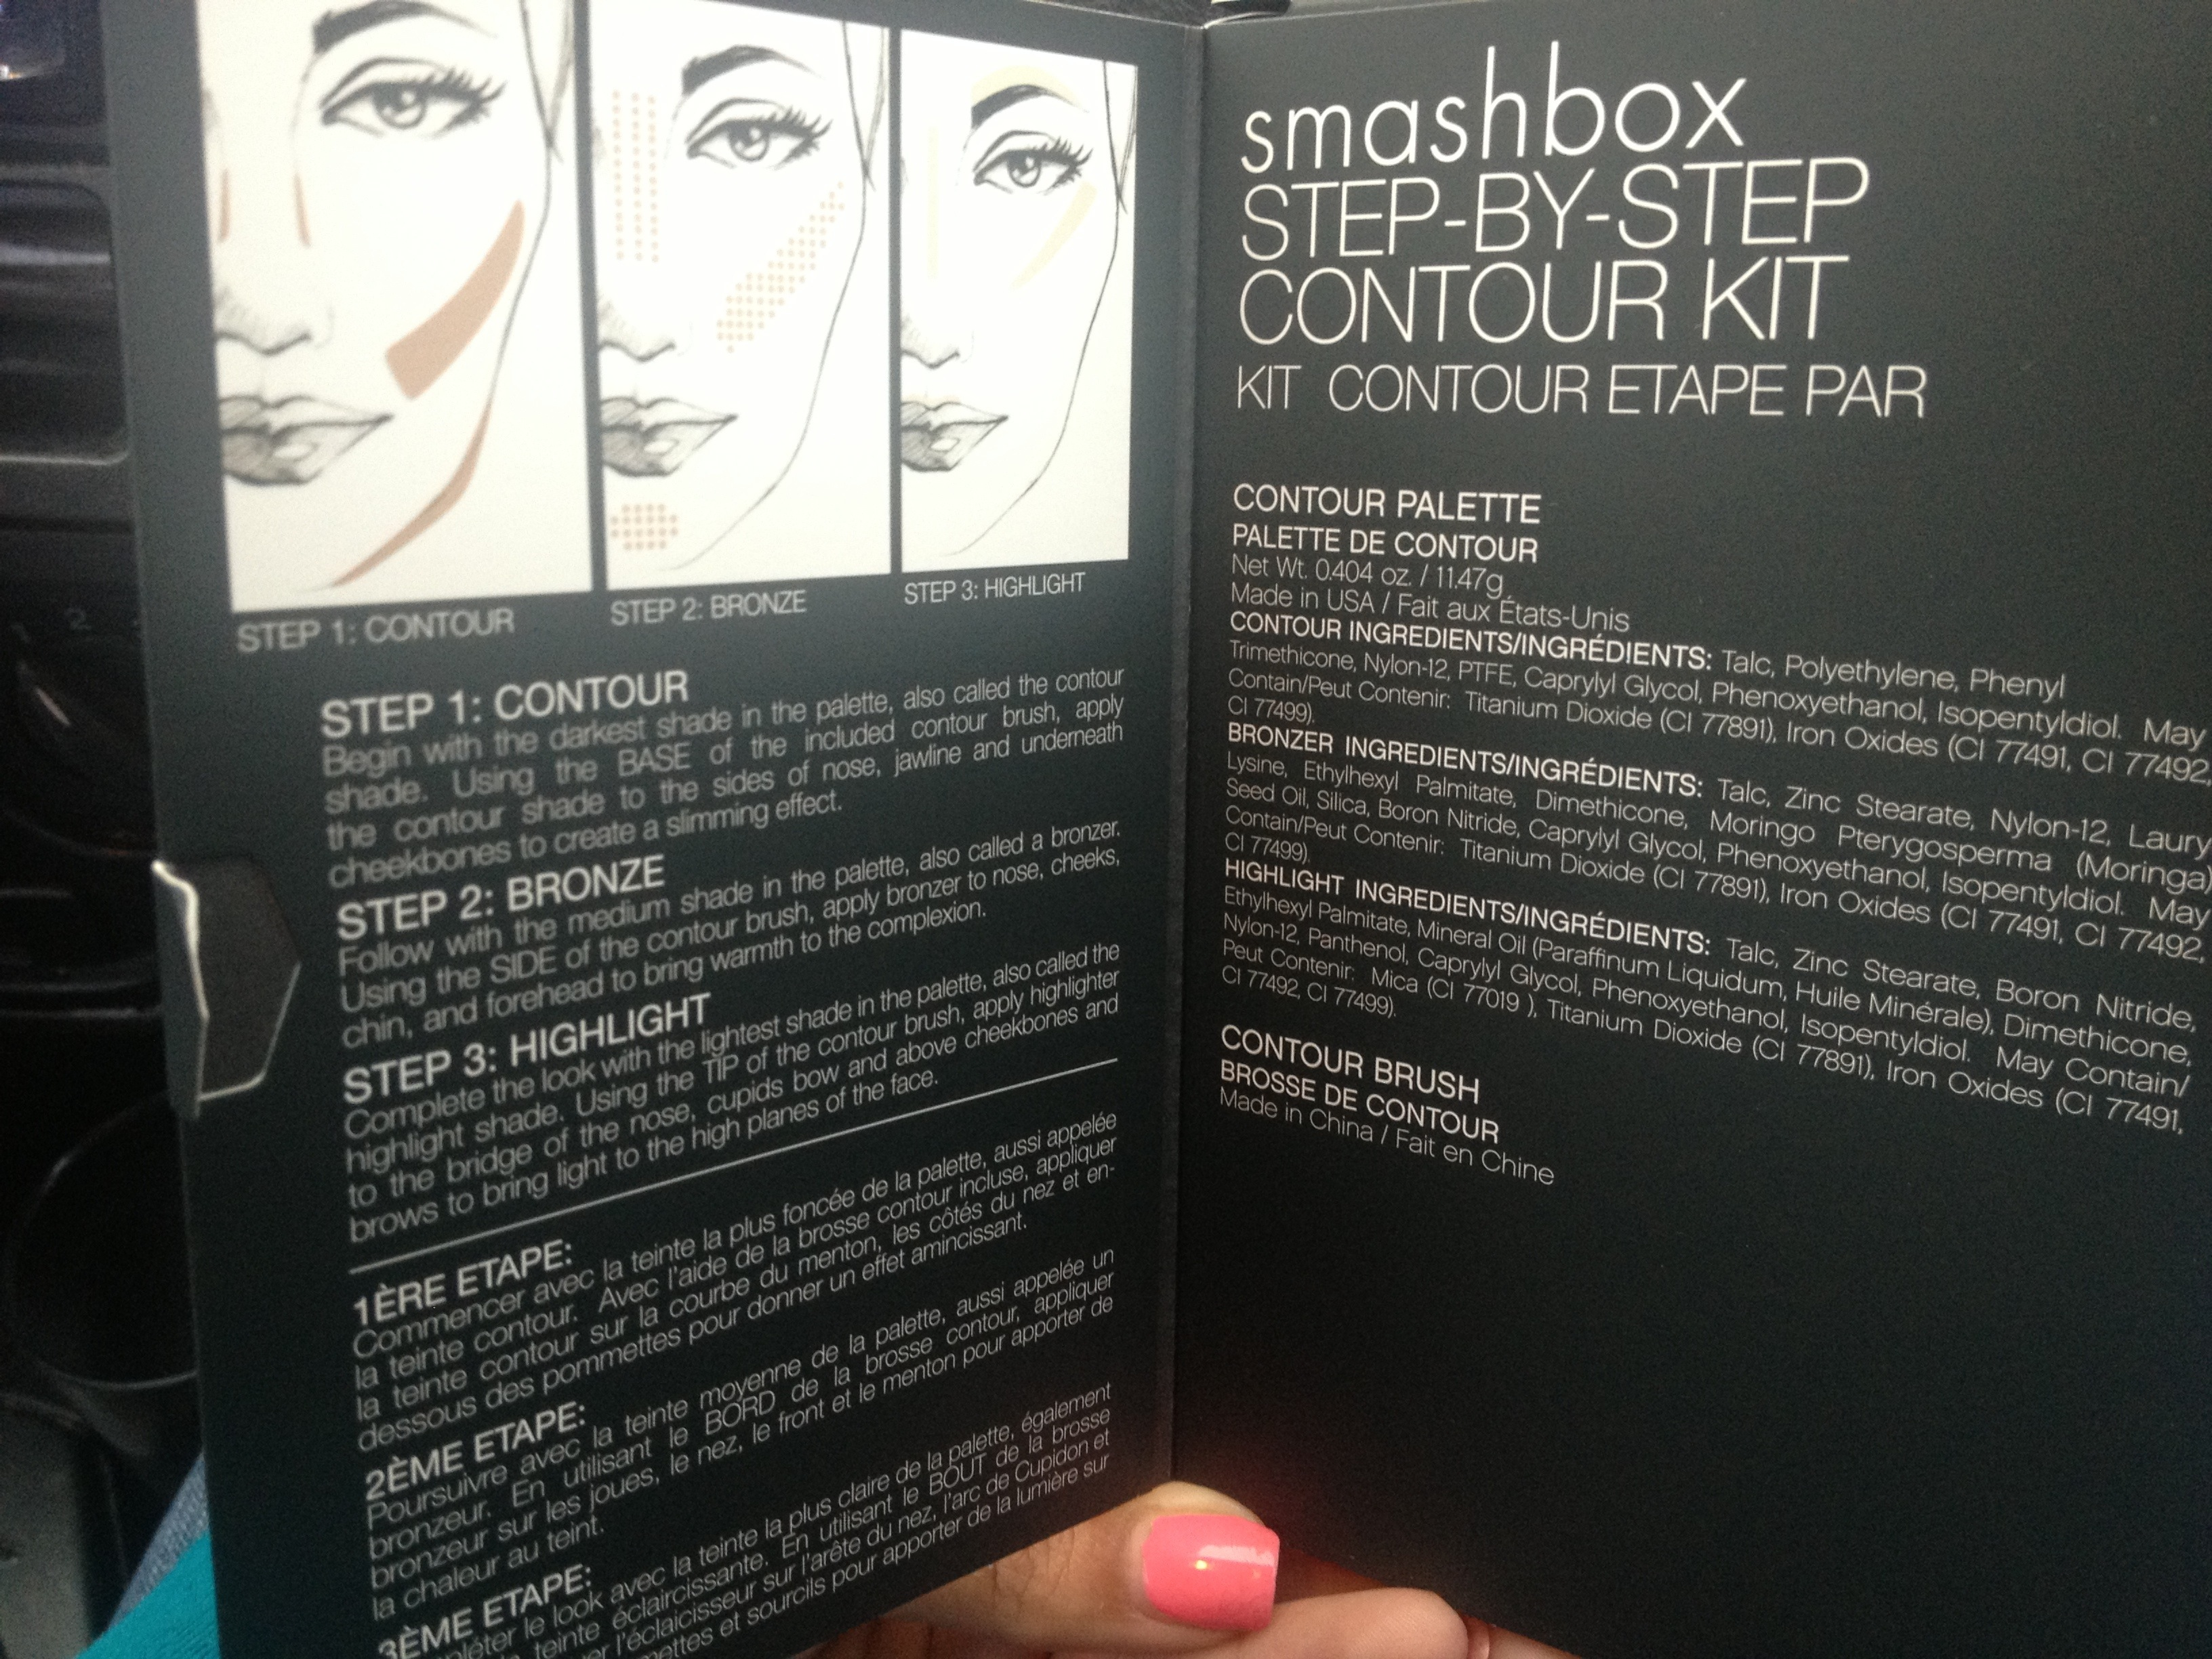 smashbox contour kit instructions